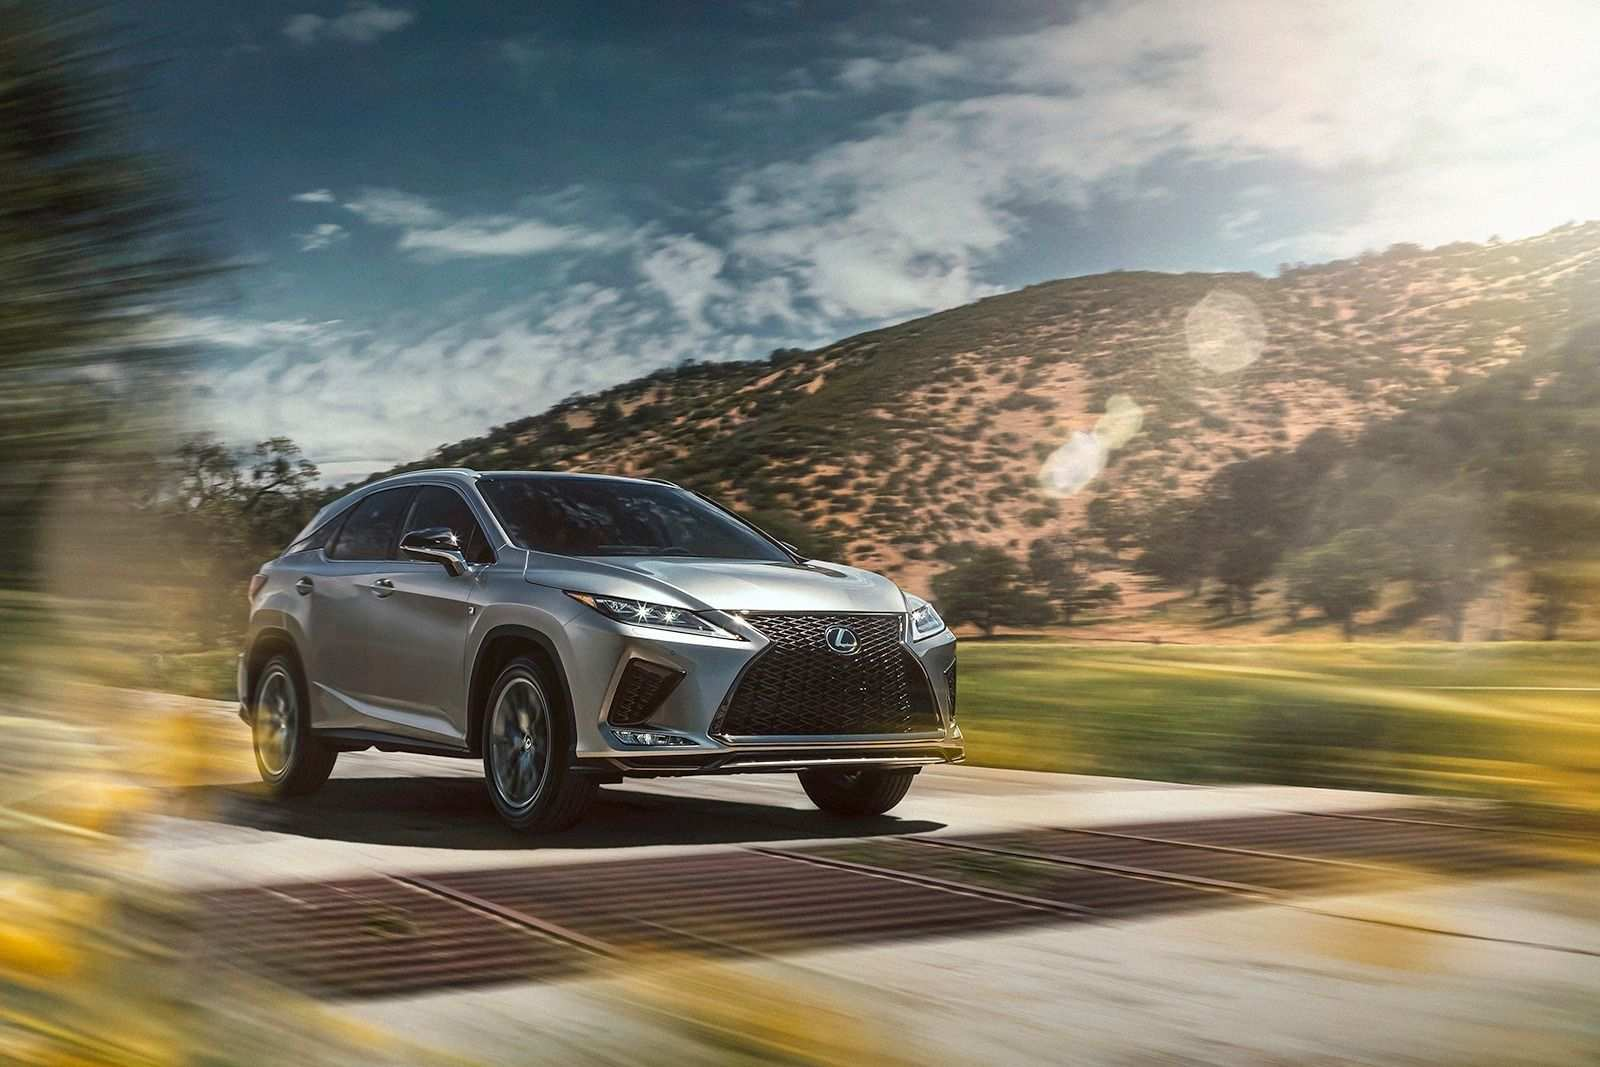 57 Best Review Lexus Rx Update 2020 Release Date for Lexus Rx Update 2020